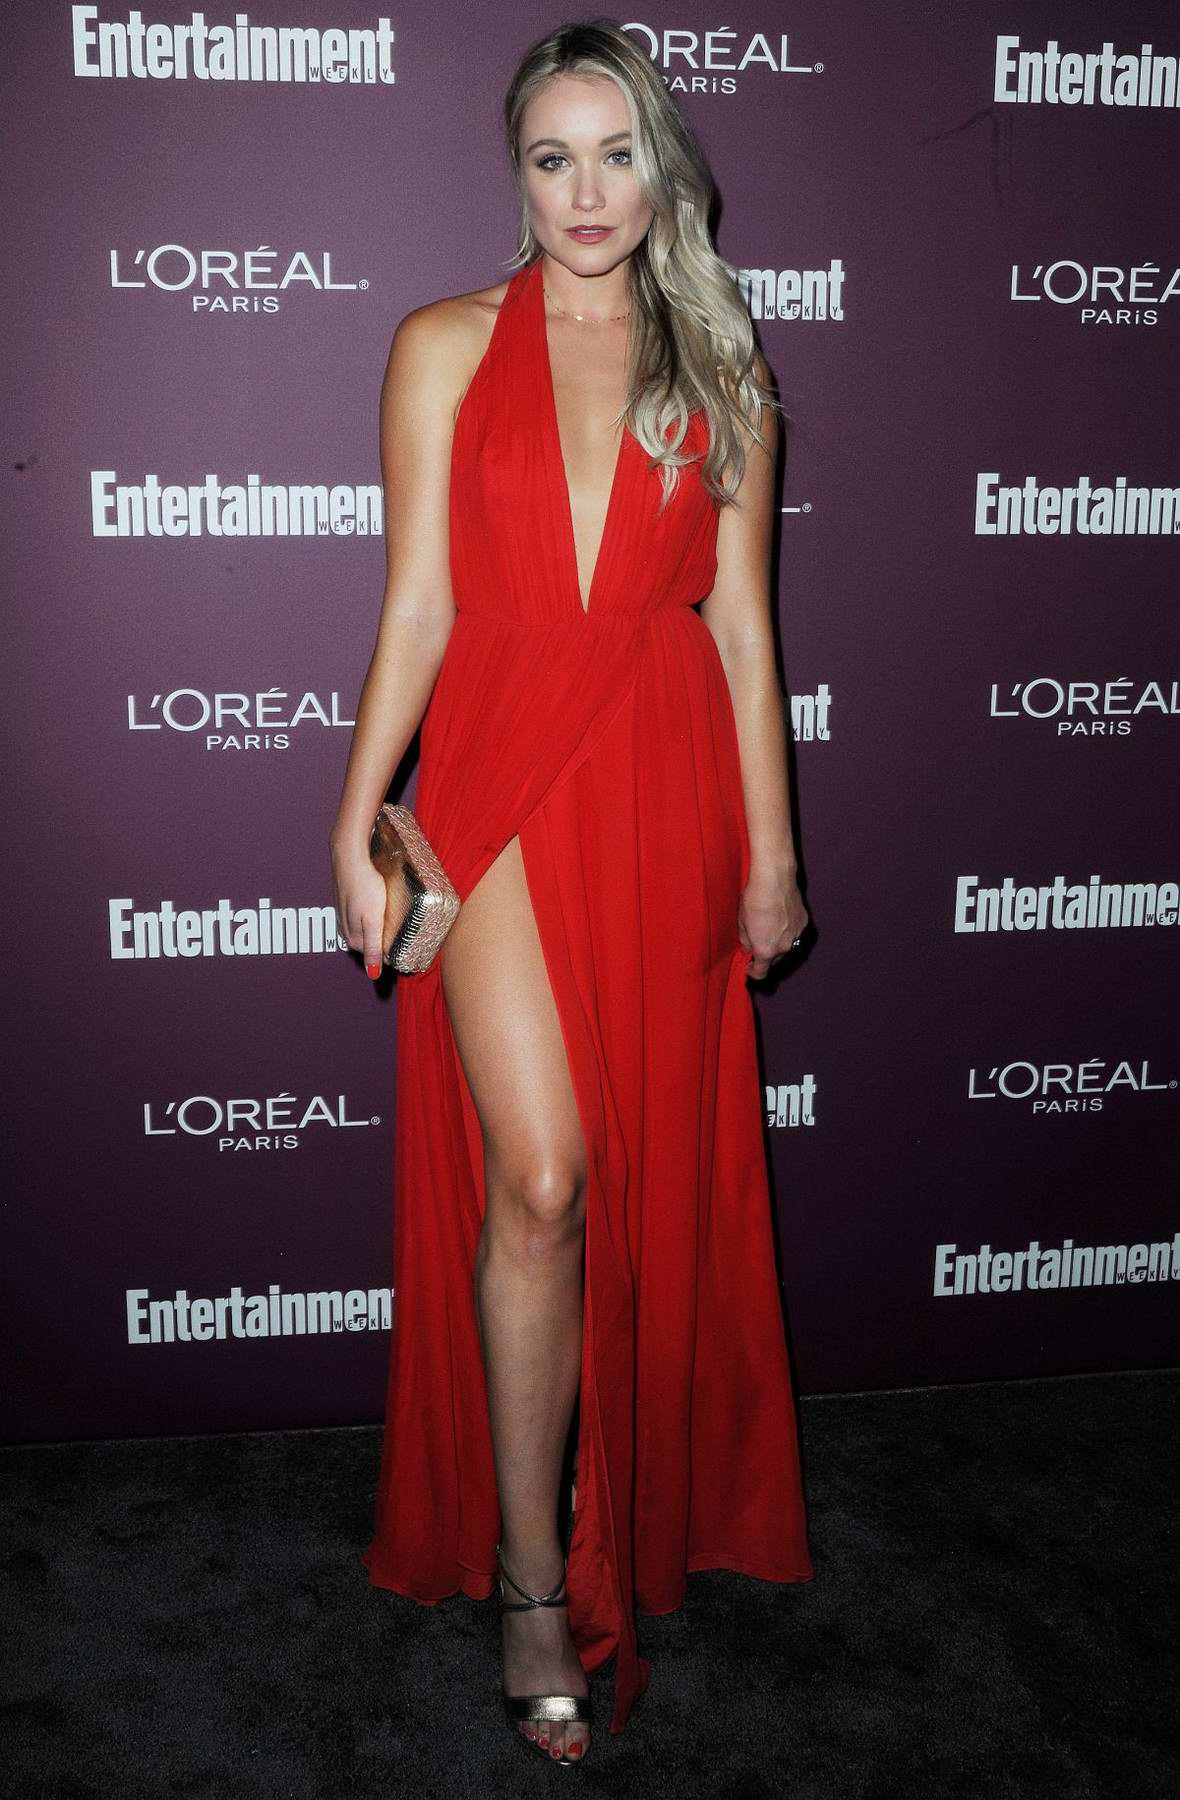 Katrina Bowden at 2017 Entertainment Weekly Pre-EMMY party in West Hollywood, Los Angeles